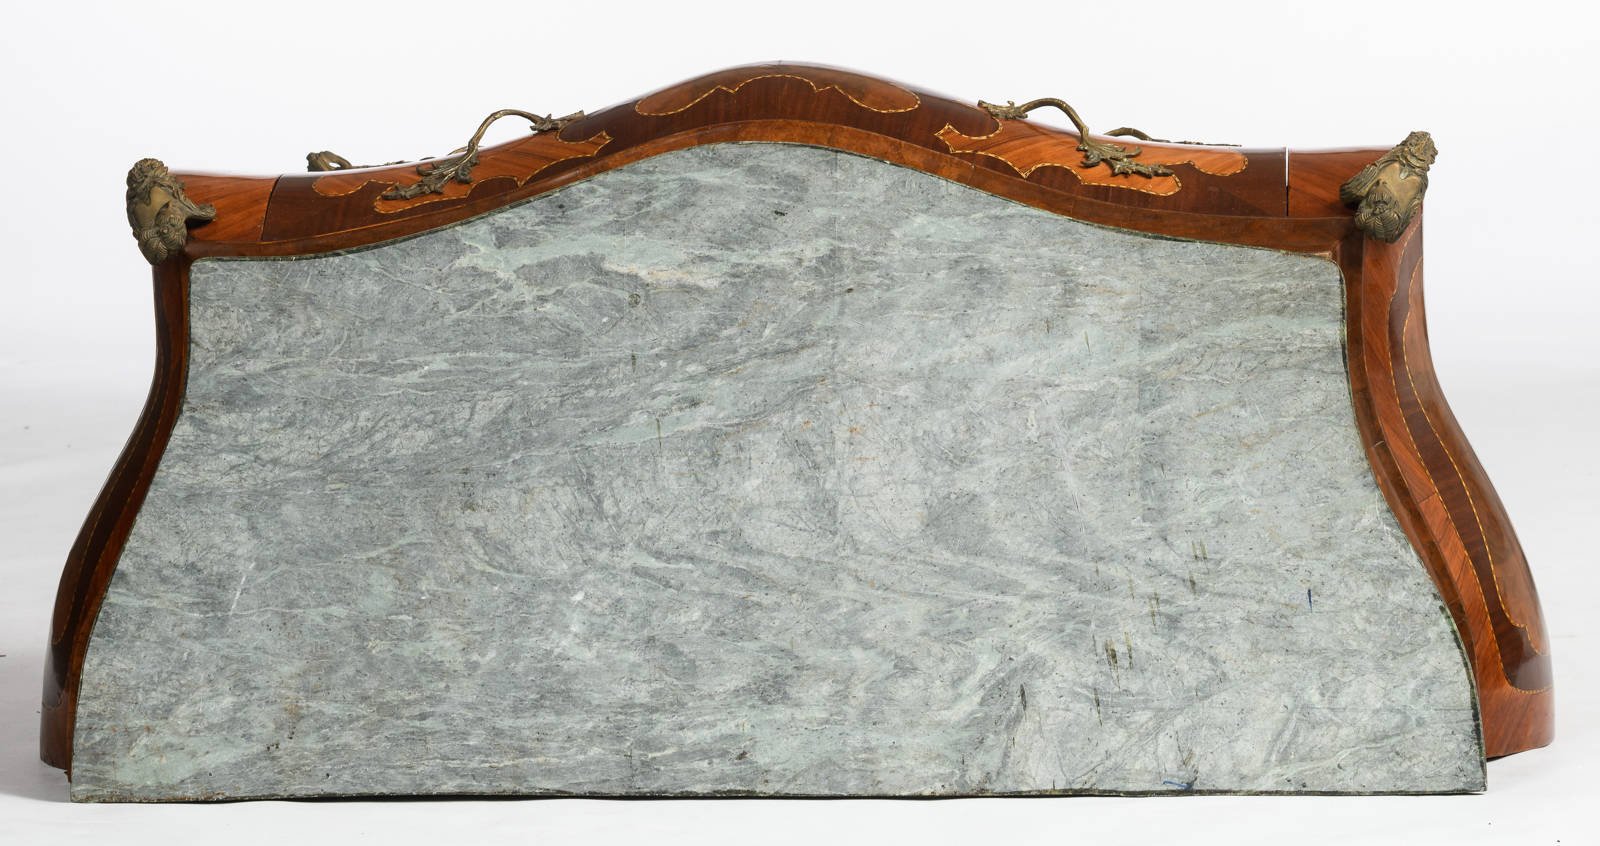 Lot 1073 - A Louis XV style bronze mounted bombe commode, marquetry veneered with mahogany, burl walnut and ros